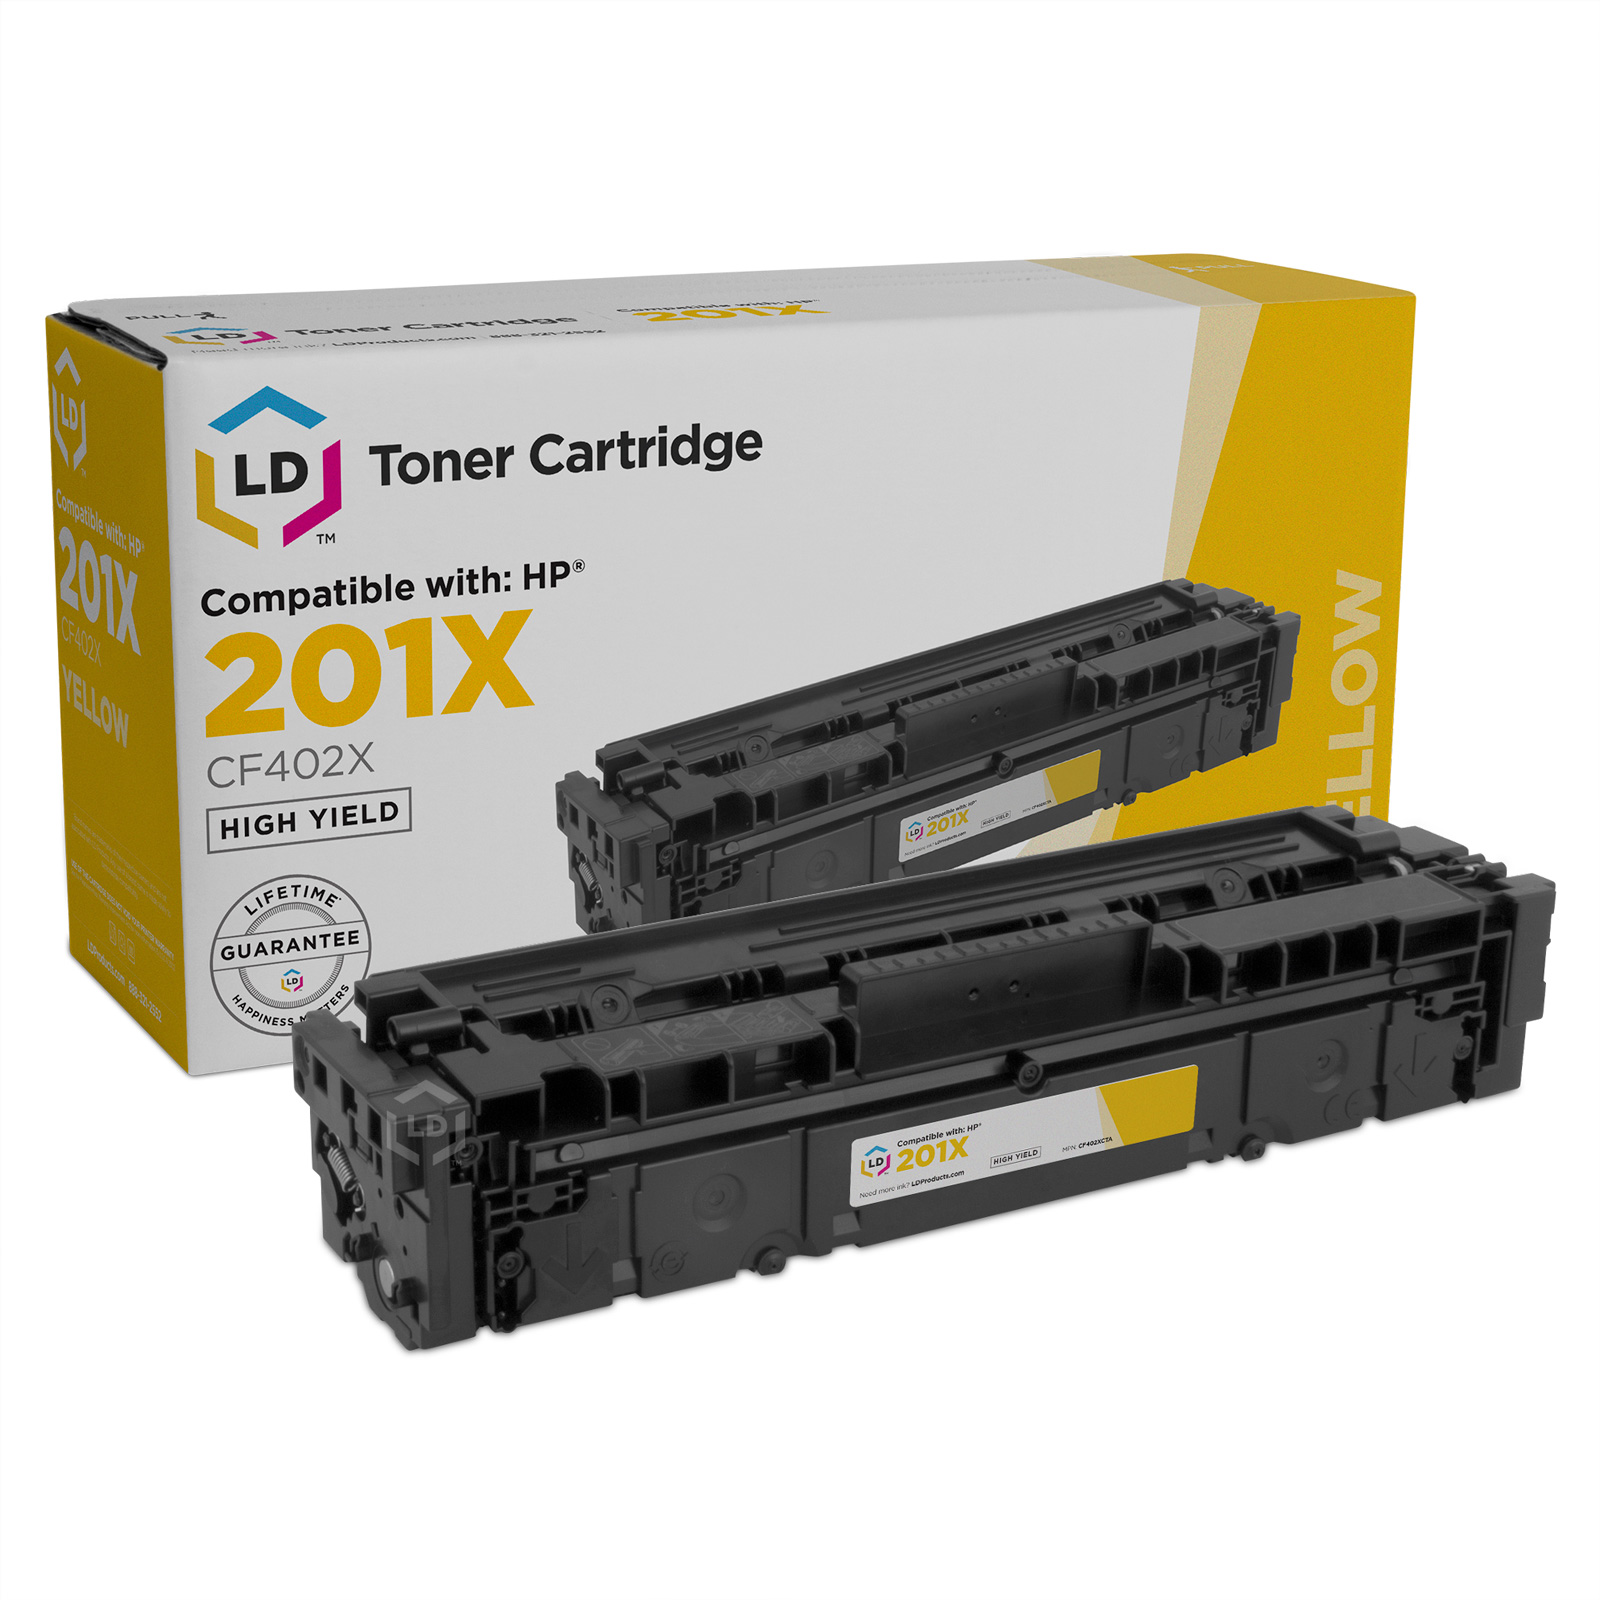 Compatible Toner Cartridge for HP 201X High Yield Yellow, 2,300 Page Yield (CF402X)